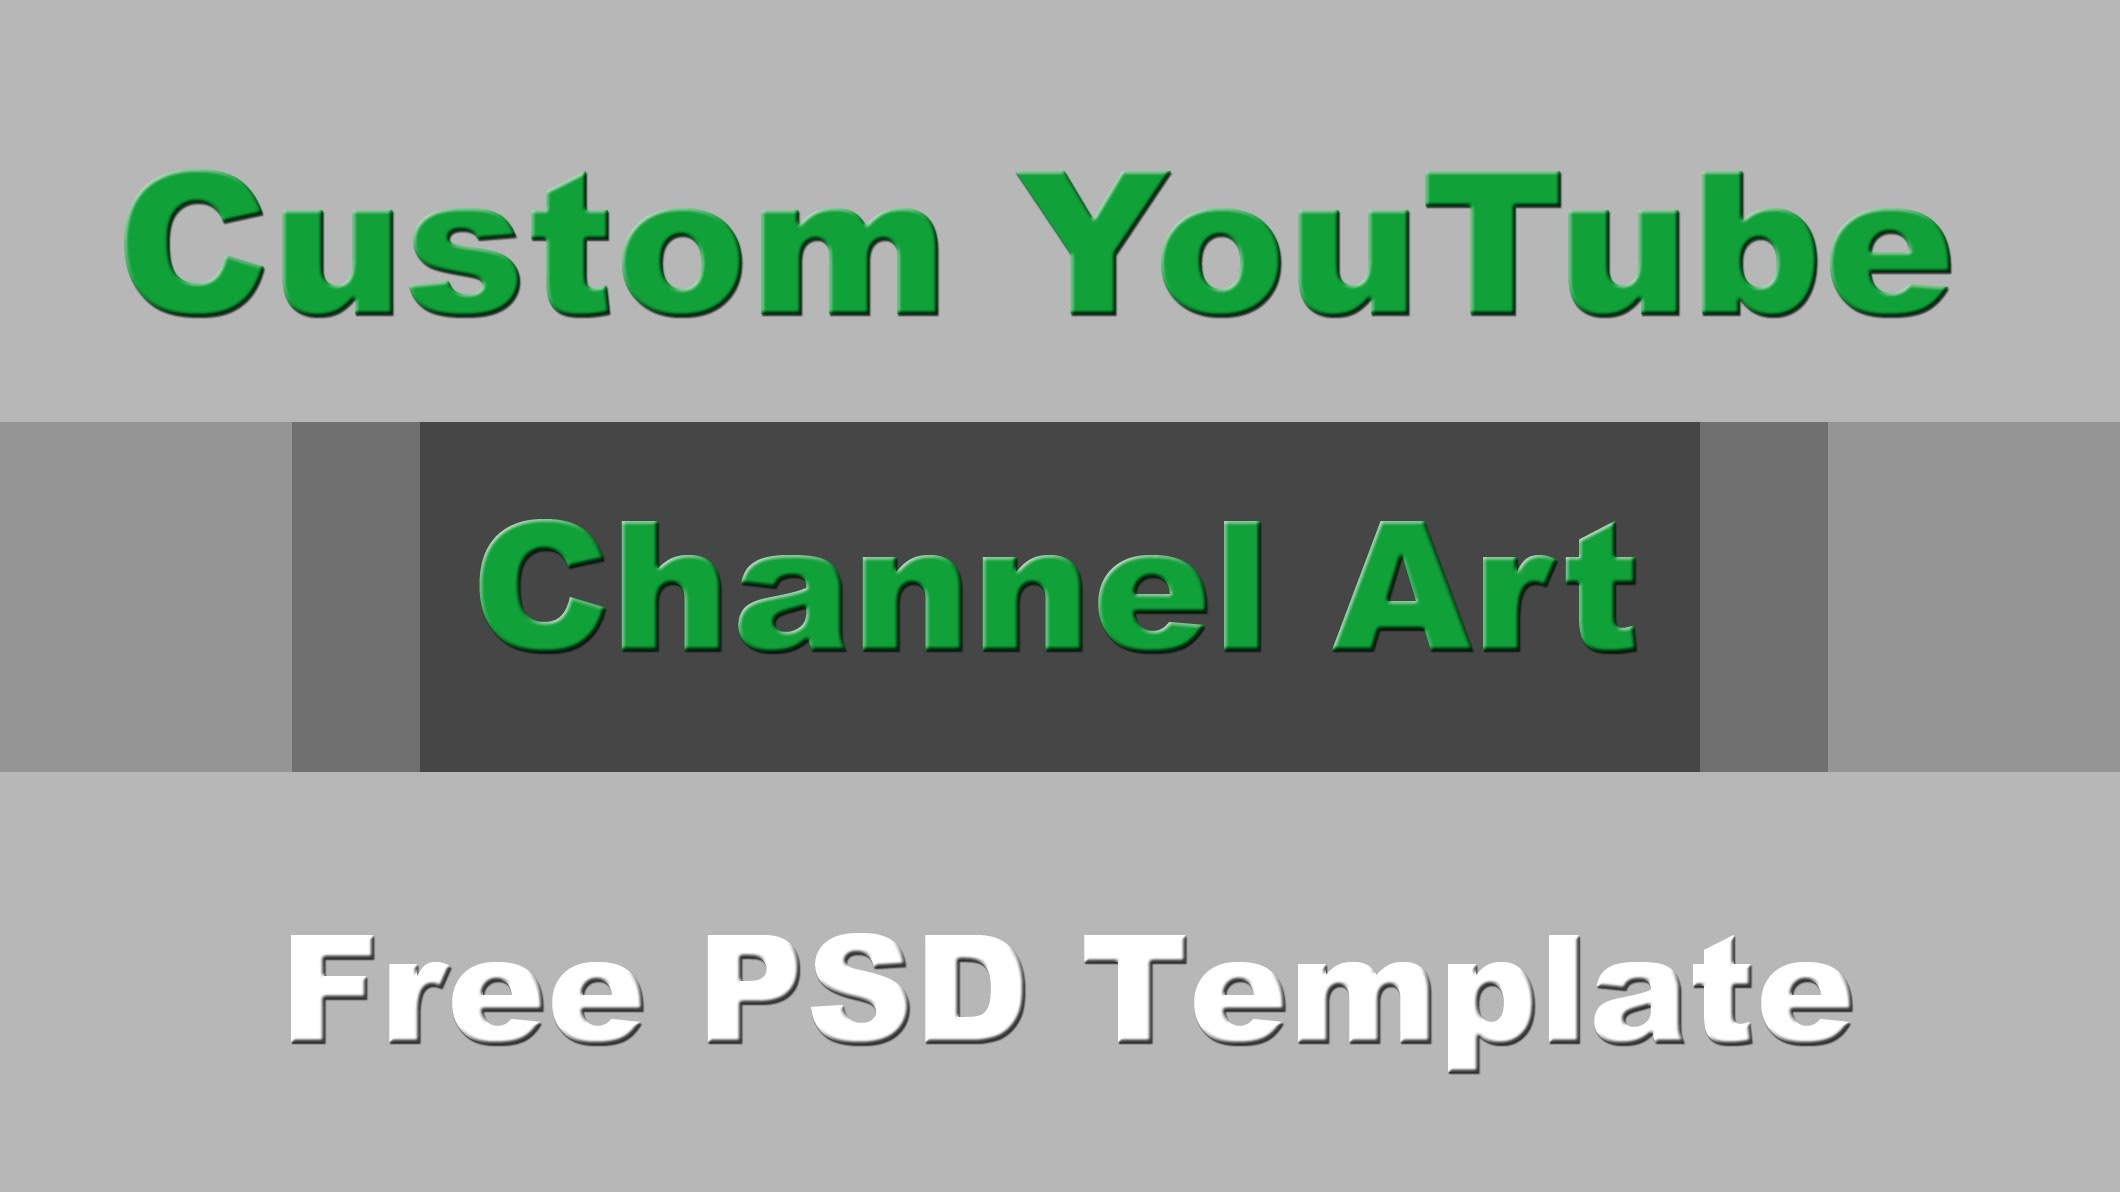 Youtube channel clipart size picture royalty free Youtube channel clipart maker - ClipartFest picture royalty free